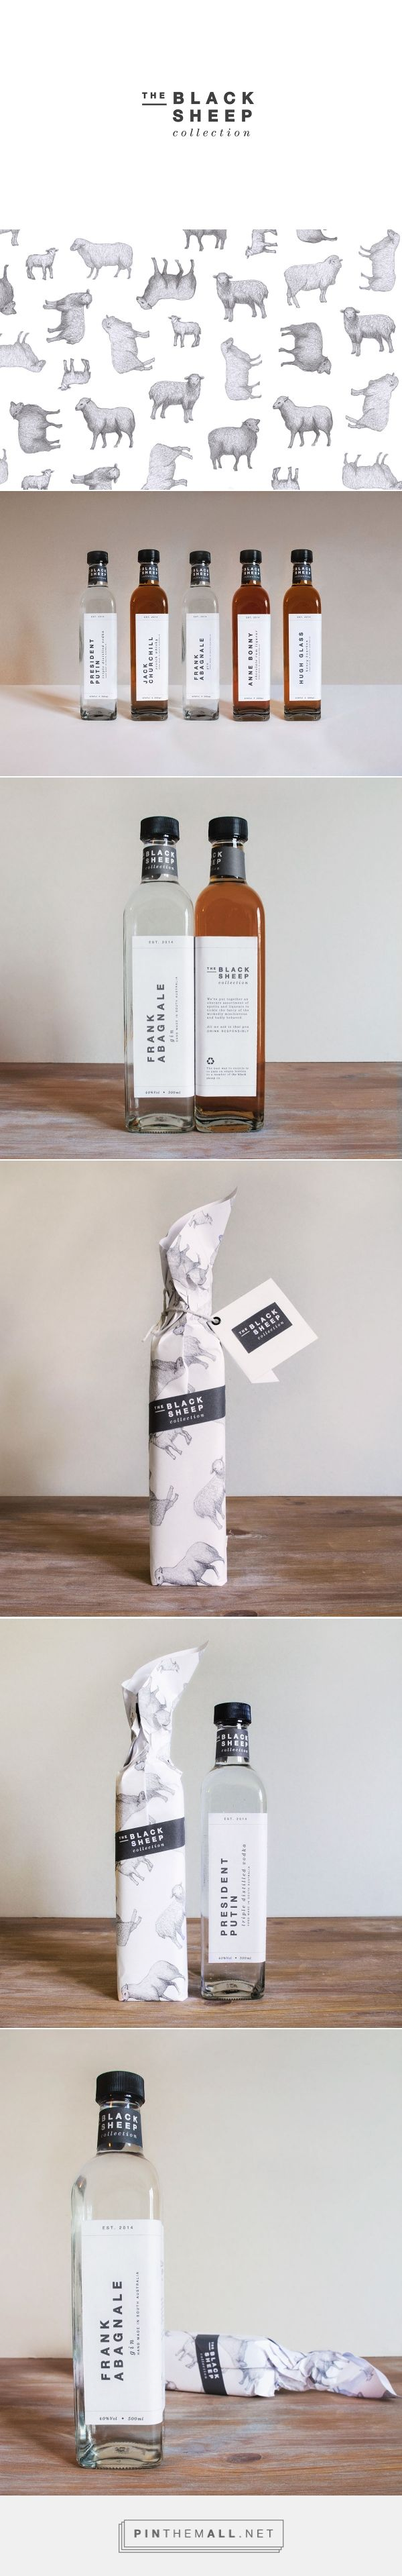 93 best simplicity in packaging images on pinterest | design